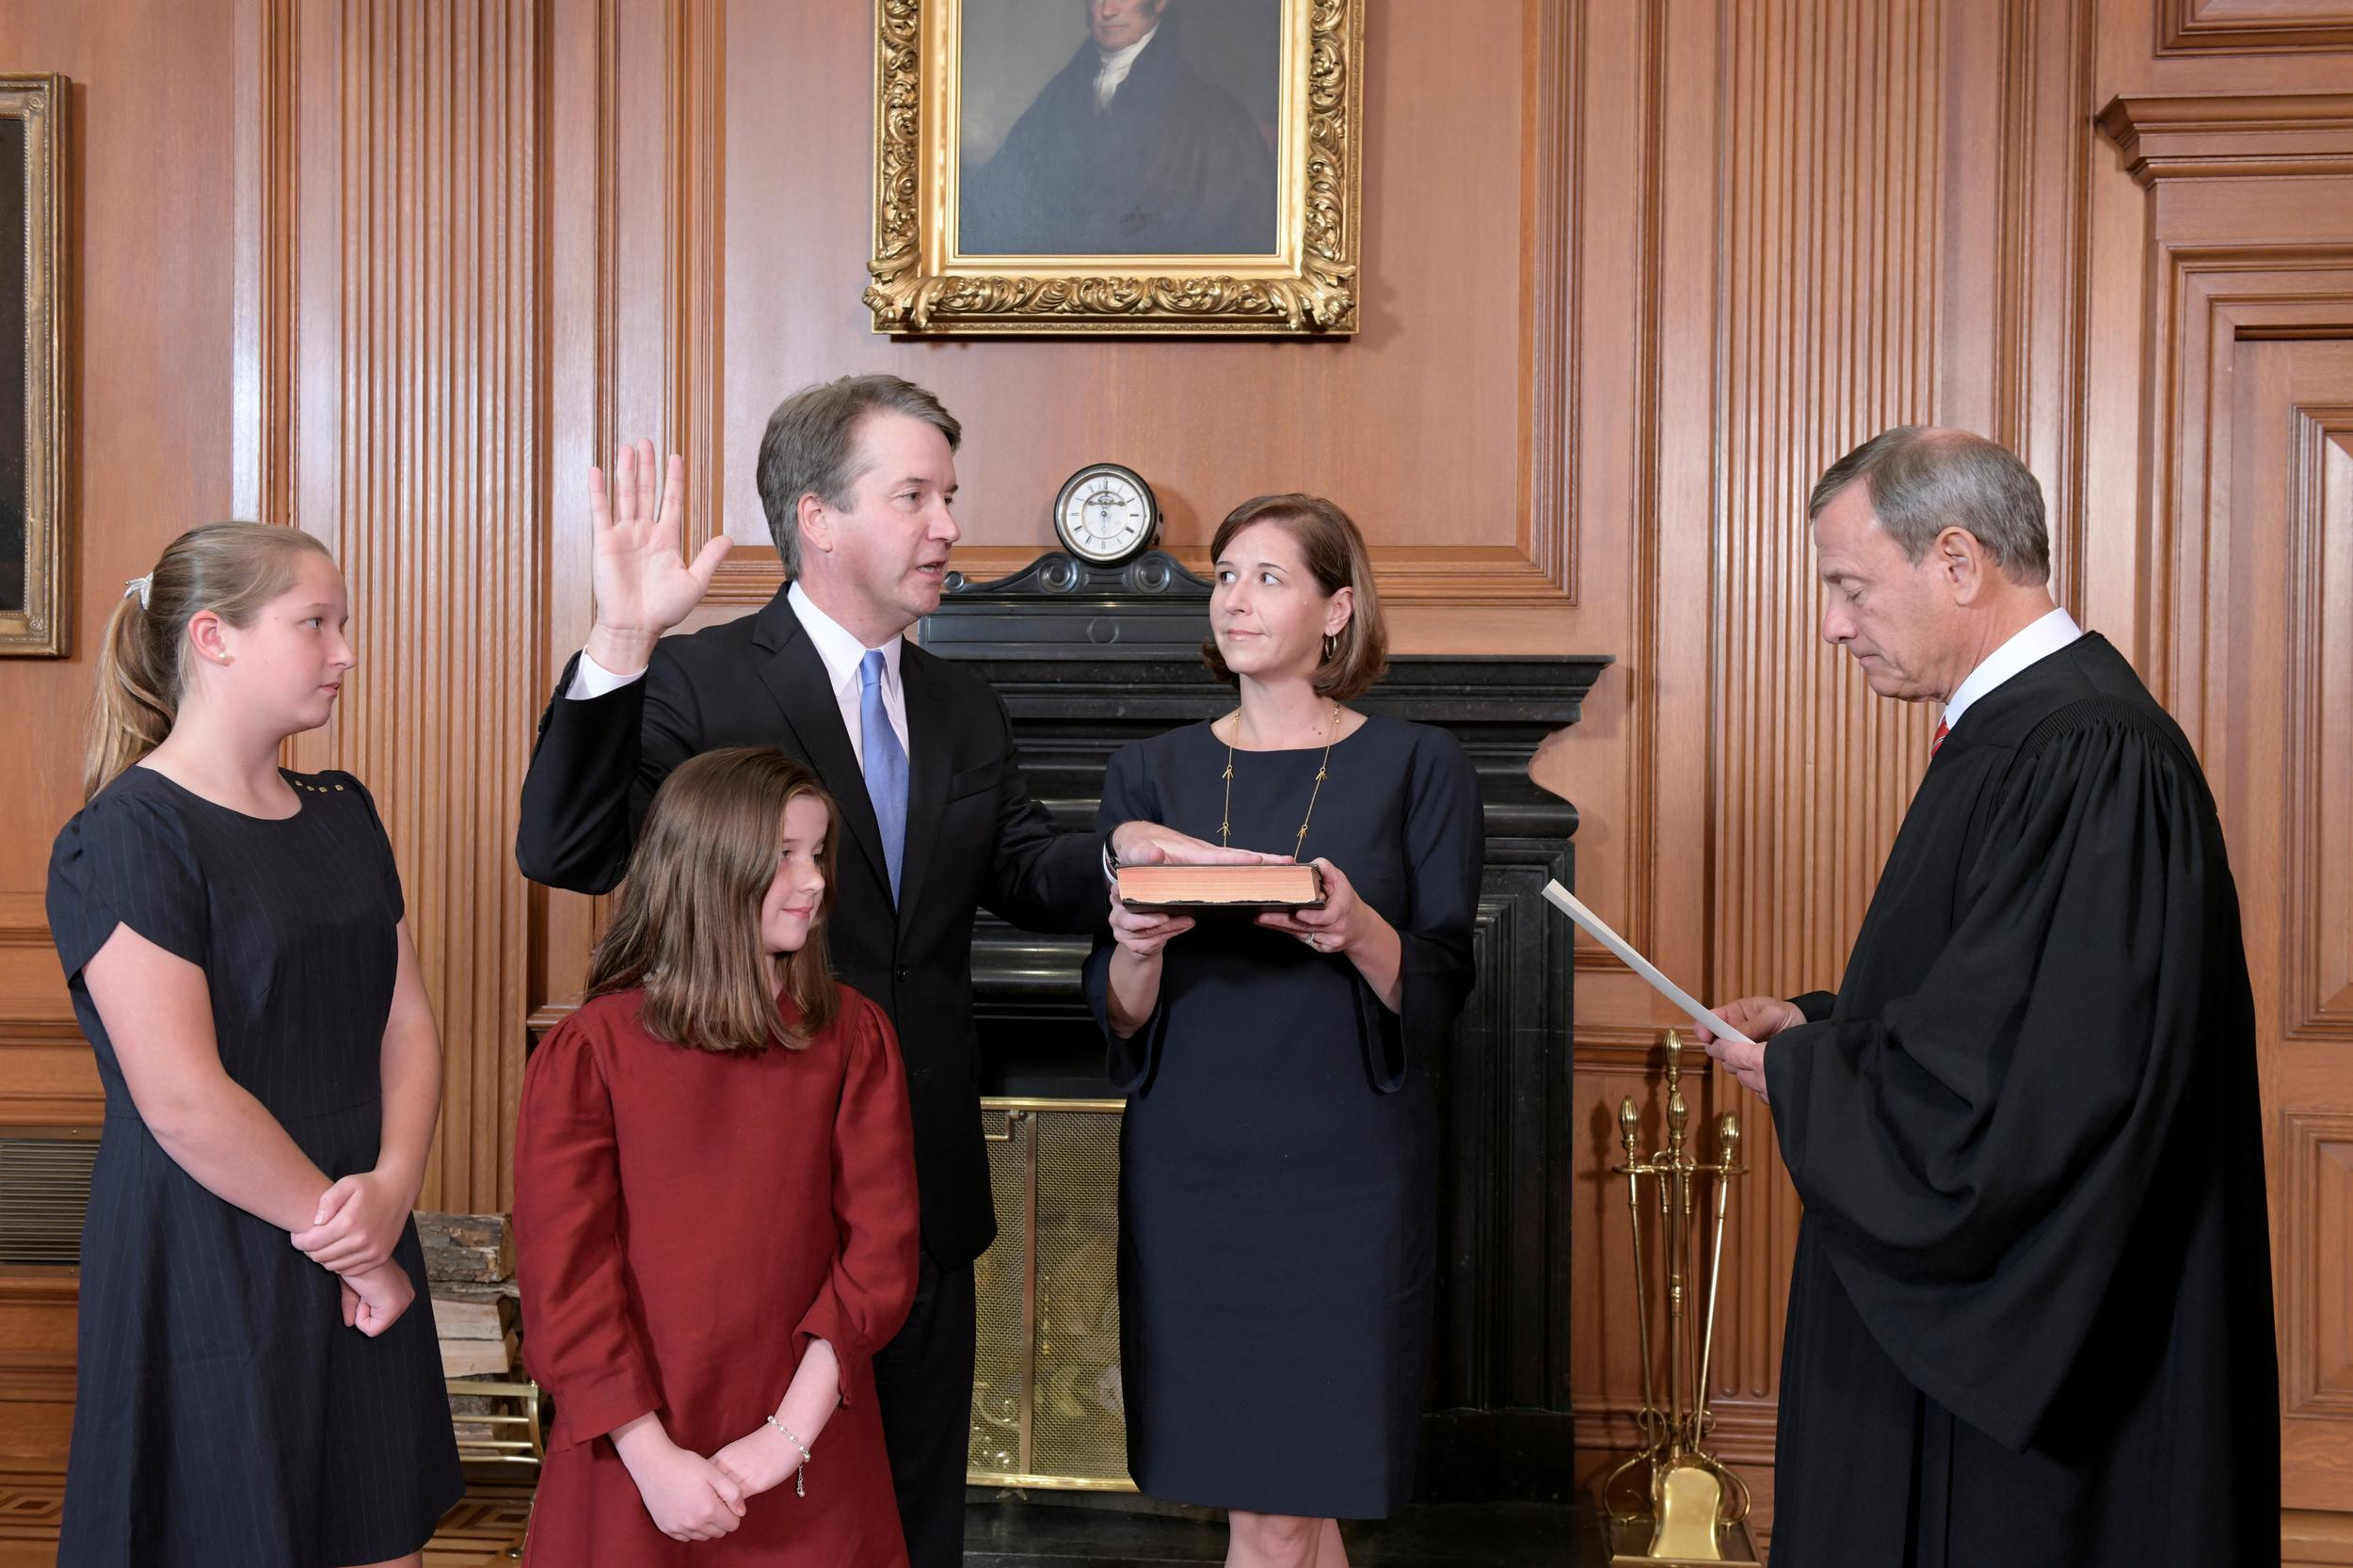 Judge Brett Kavanaugh is sworn in as an Associate Justice of the U.S. Supreme Court by Chief Justice John Roberts as Kavanaugh's wife Ashley holds the family bible and his daughters Liza and Margaret look on in a handout photo provided by the U.S. Supreme Court taken at the Supreme Court building in Washington, U.S., October 6, 2018. Fred Schilling/Collection of the Supreme Court of the United States/Handout via Reuters ATTENTION EDITORS - THIS IMAGE WAS PROVIDED BY A THIRD PARTY. TPX IMAGES OF THE DAY